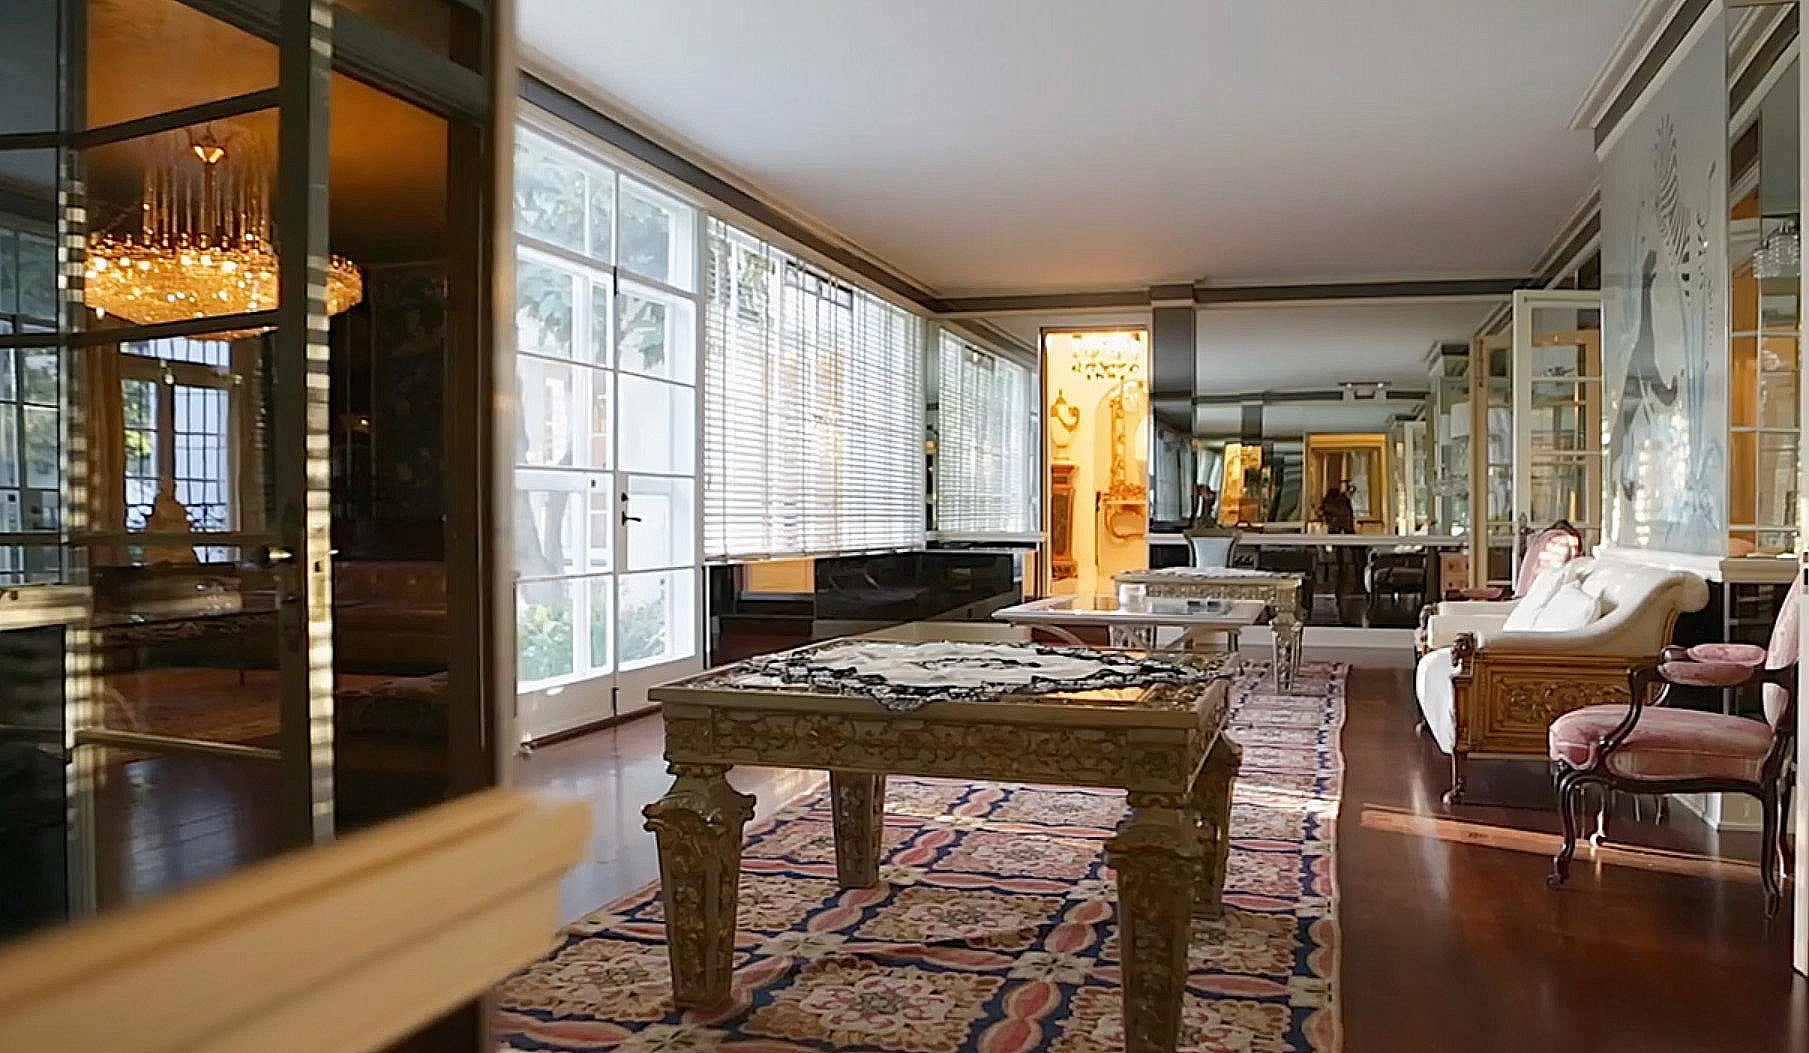 A seating area facing the gilded tables on area rugs and large windows. Image courtesy of Toptenrealestatedeals.com.